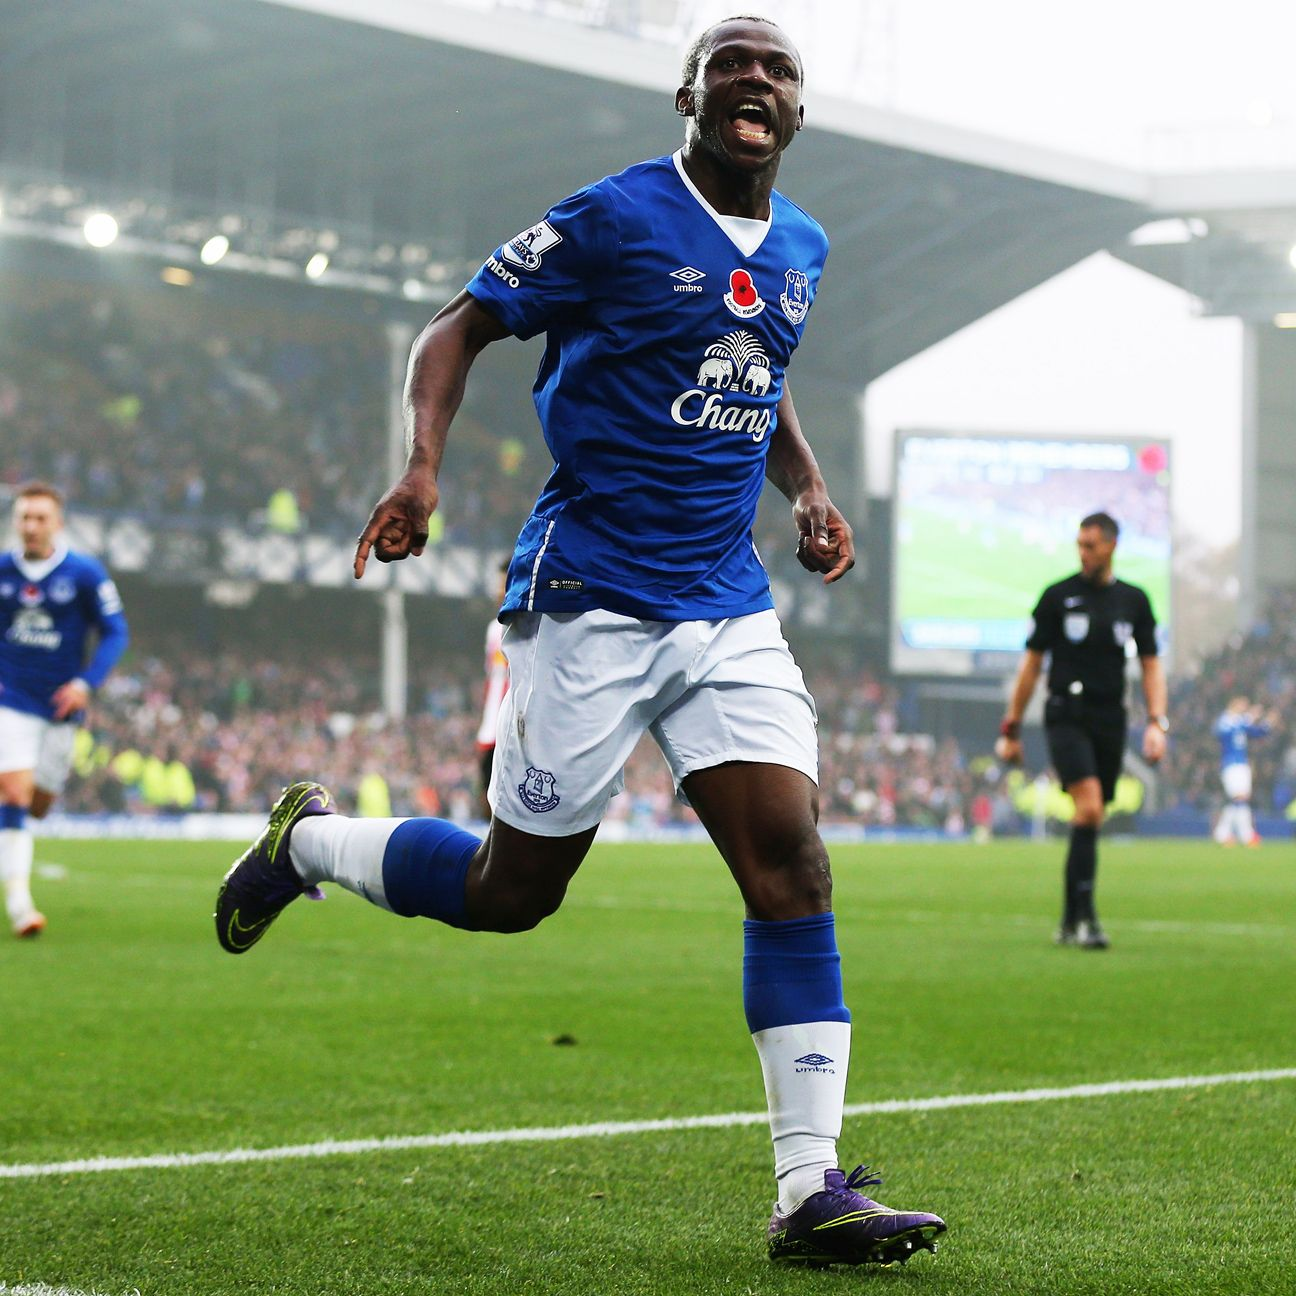 Arouna Kone enjoyed a banner day for Everton, scoring a hat trick in Sunday's win over Sunderland.